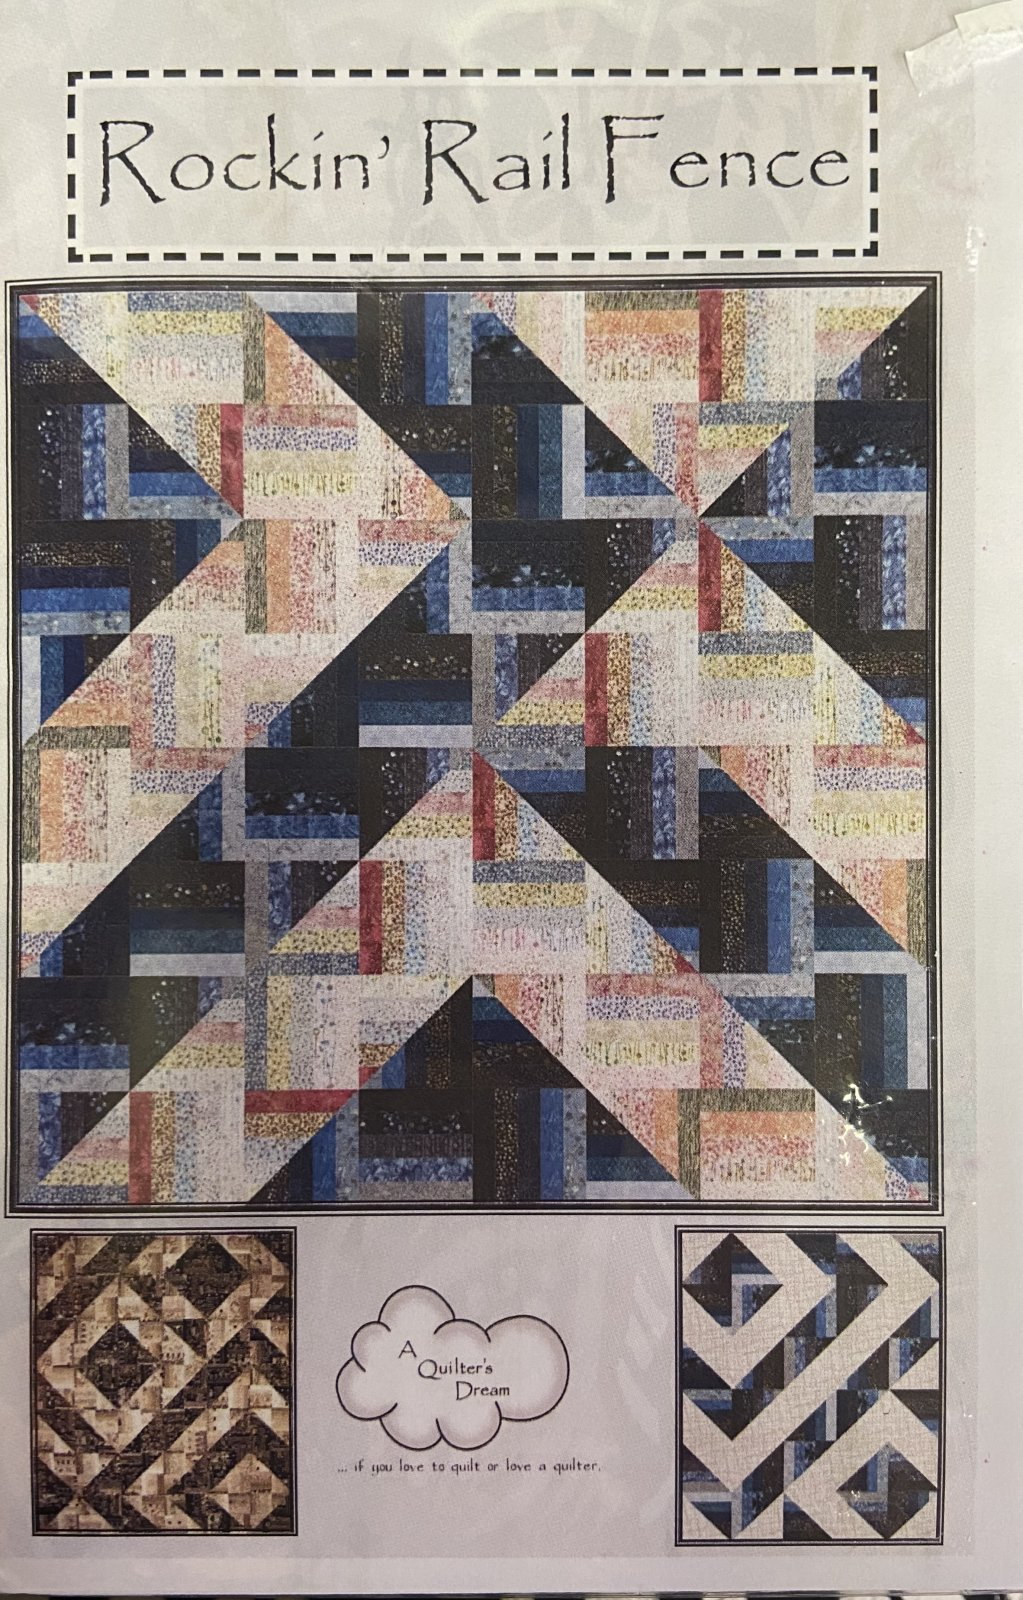 A Quilter's Dream Rockin' Rail Fence Quilt pattern